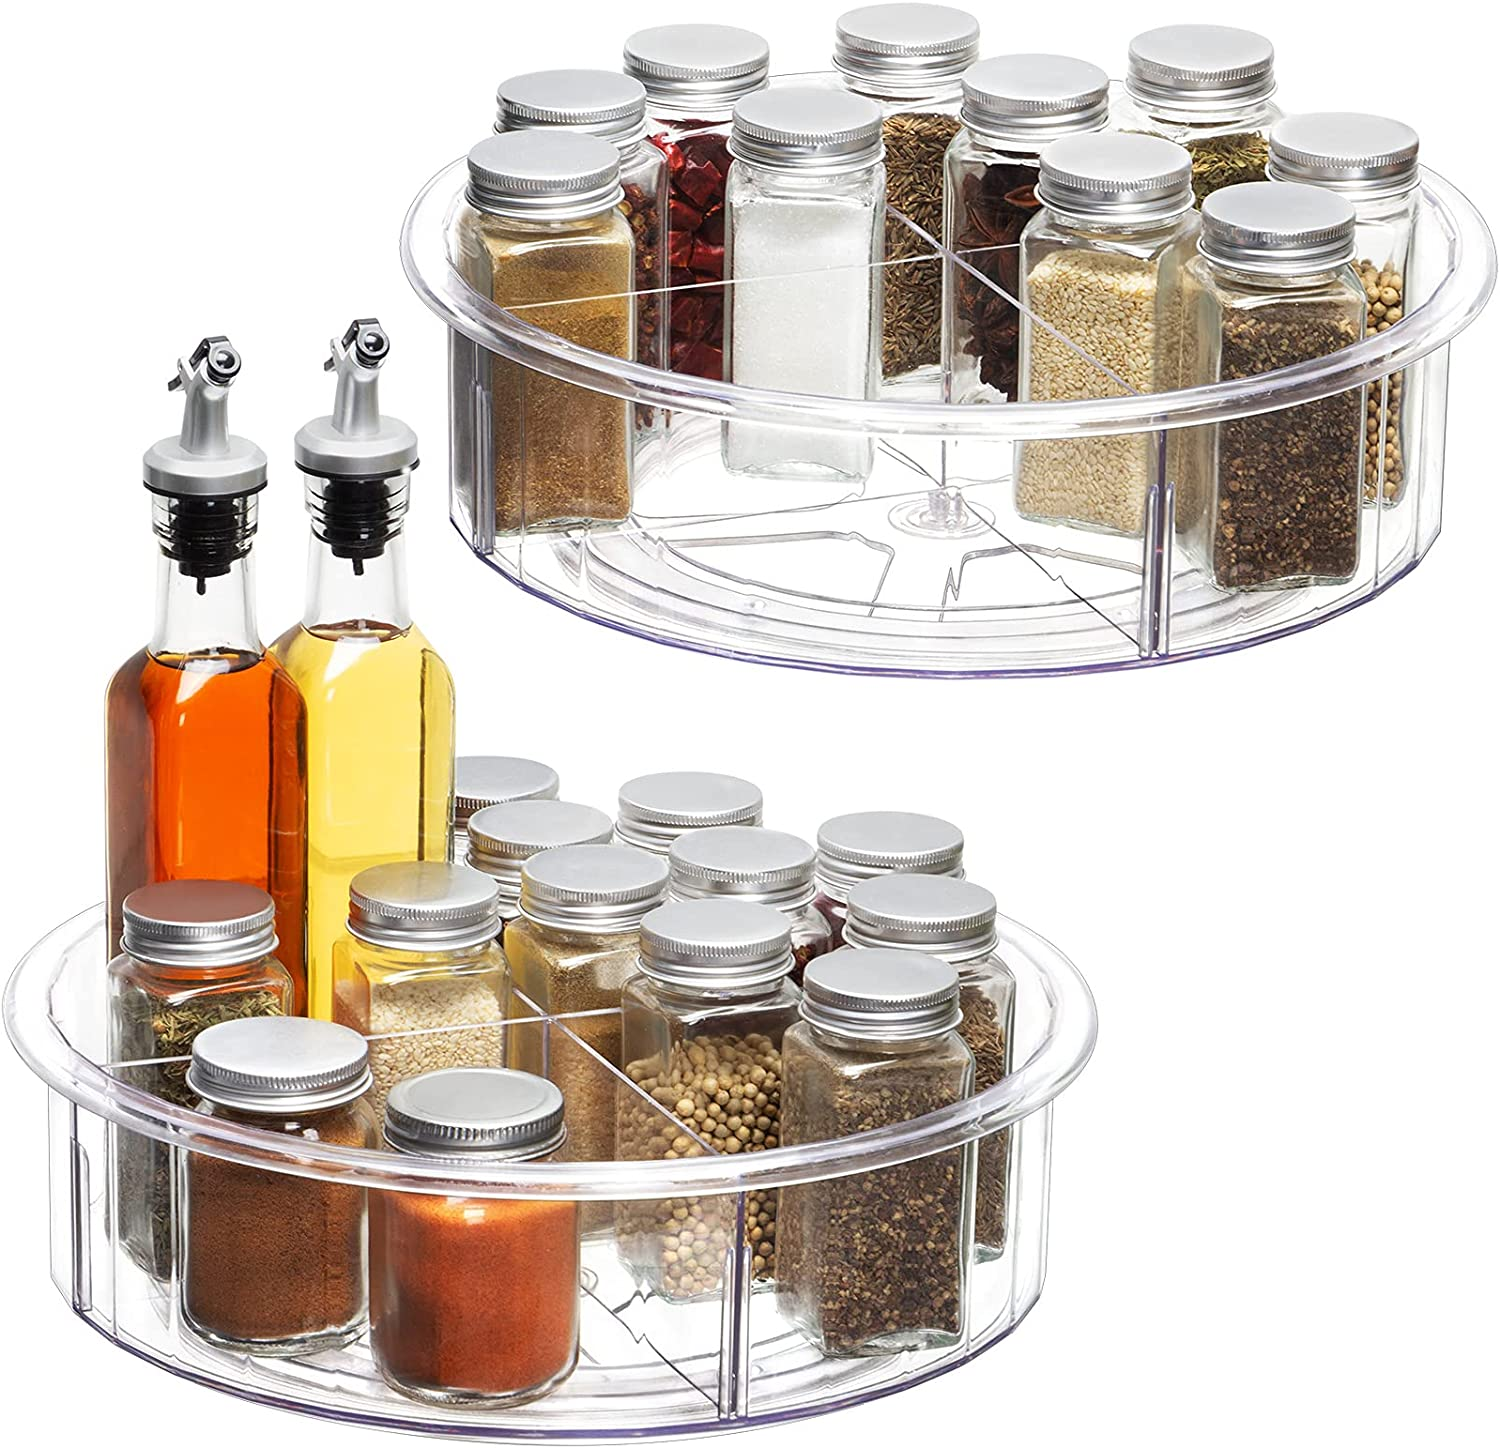 12 Inch Lazy Susan Cabinet Organizer - 2 Pack Round Clear Spinning Organization & Storage Container Bin Turntable Plastic Condiment Spice with Dividers for Pantry Kitchen Fridge Vanity Bathroom Makeup